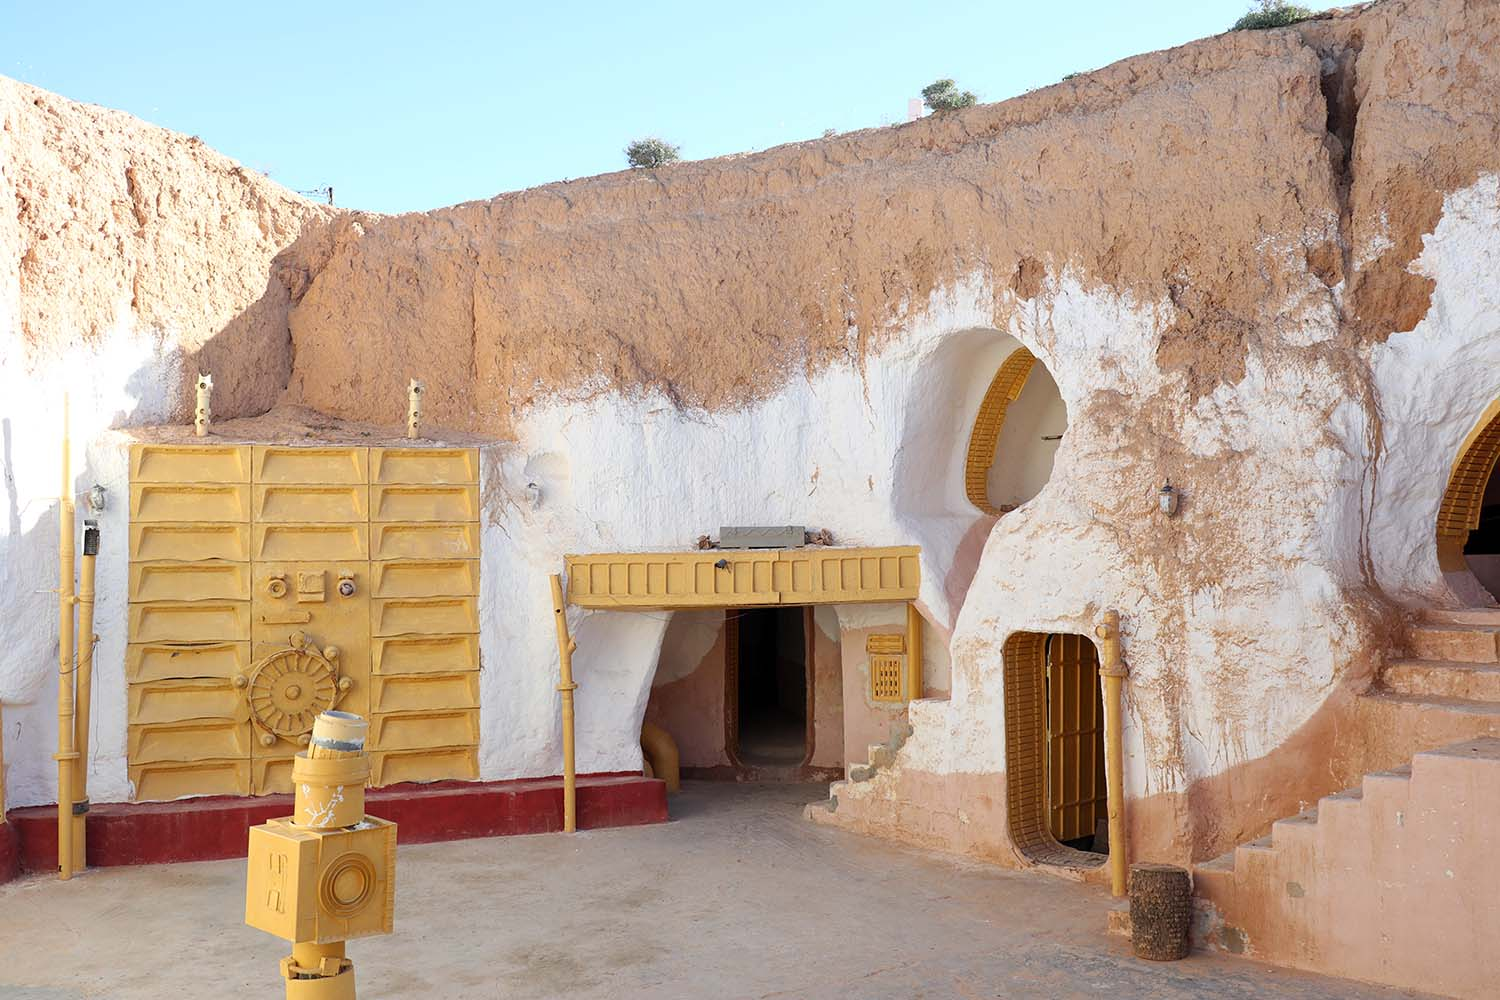 Hotel Sidi Driss in Matmata - Lars Homestead Interior on Tatooine in Star Wars